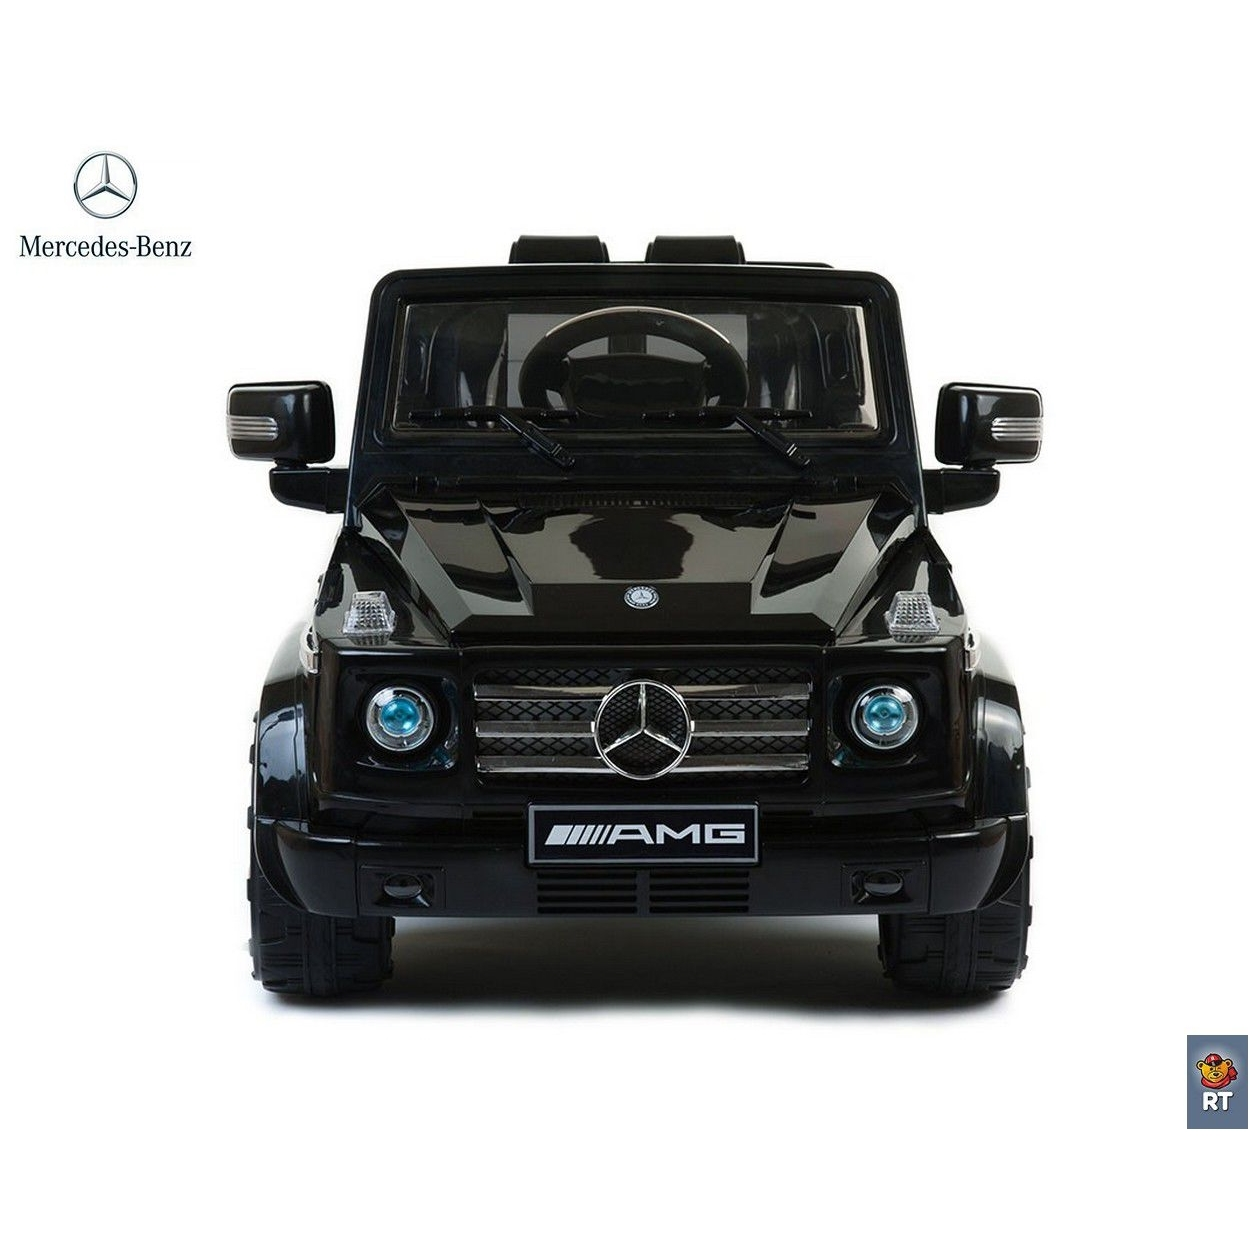 Электромобиль RT Mercedes-Benz AMG NEW Version Black